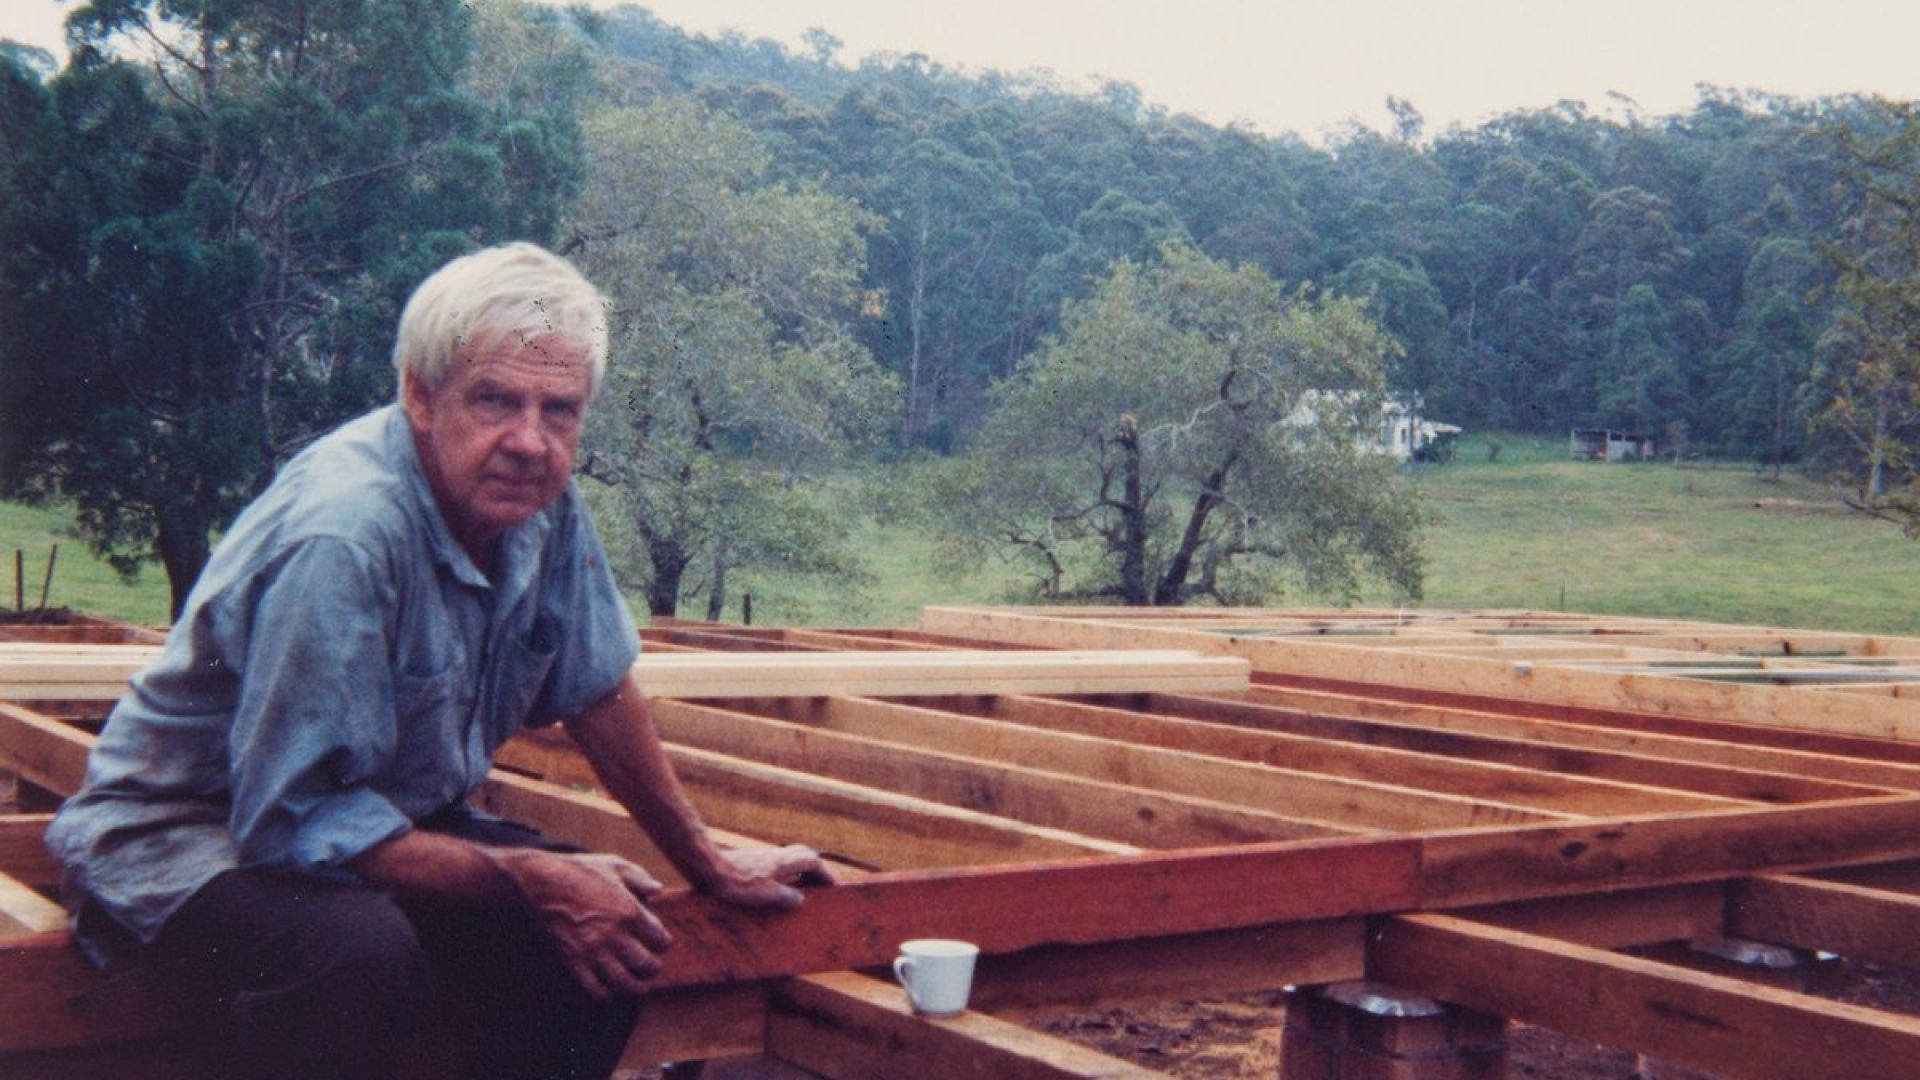 Arthur Boyd sitting on wooden beams at a construction site